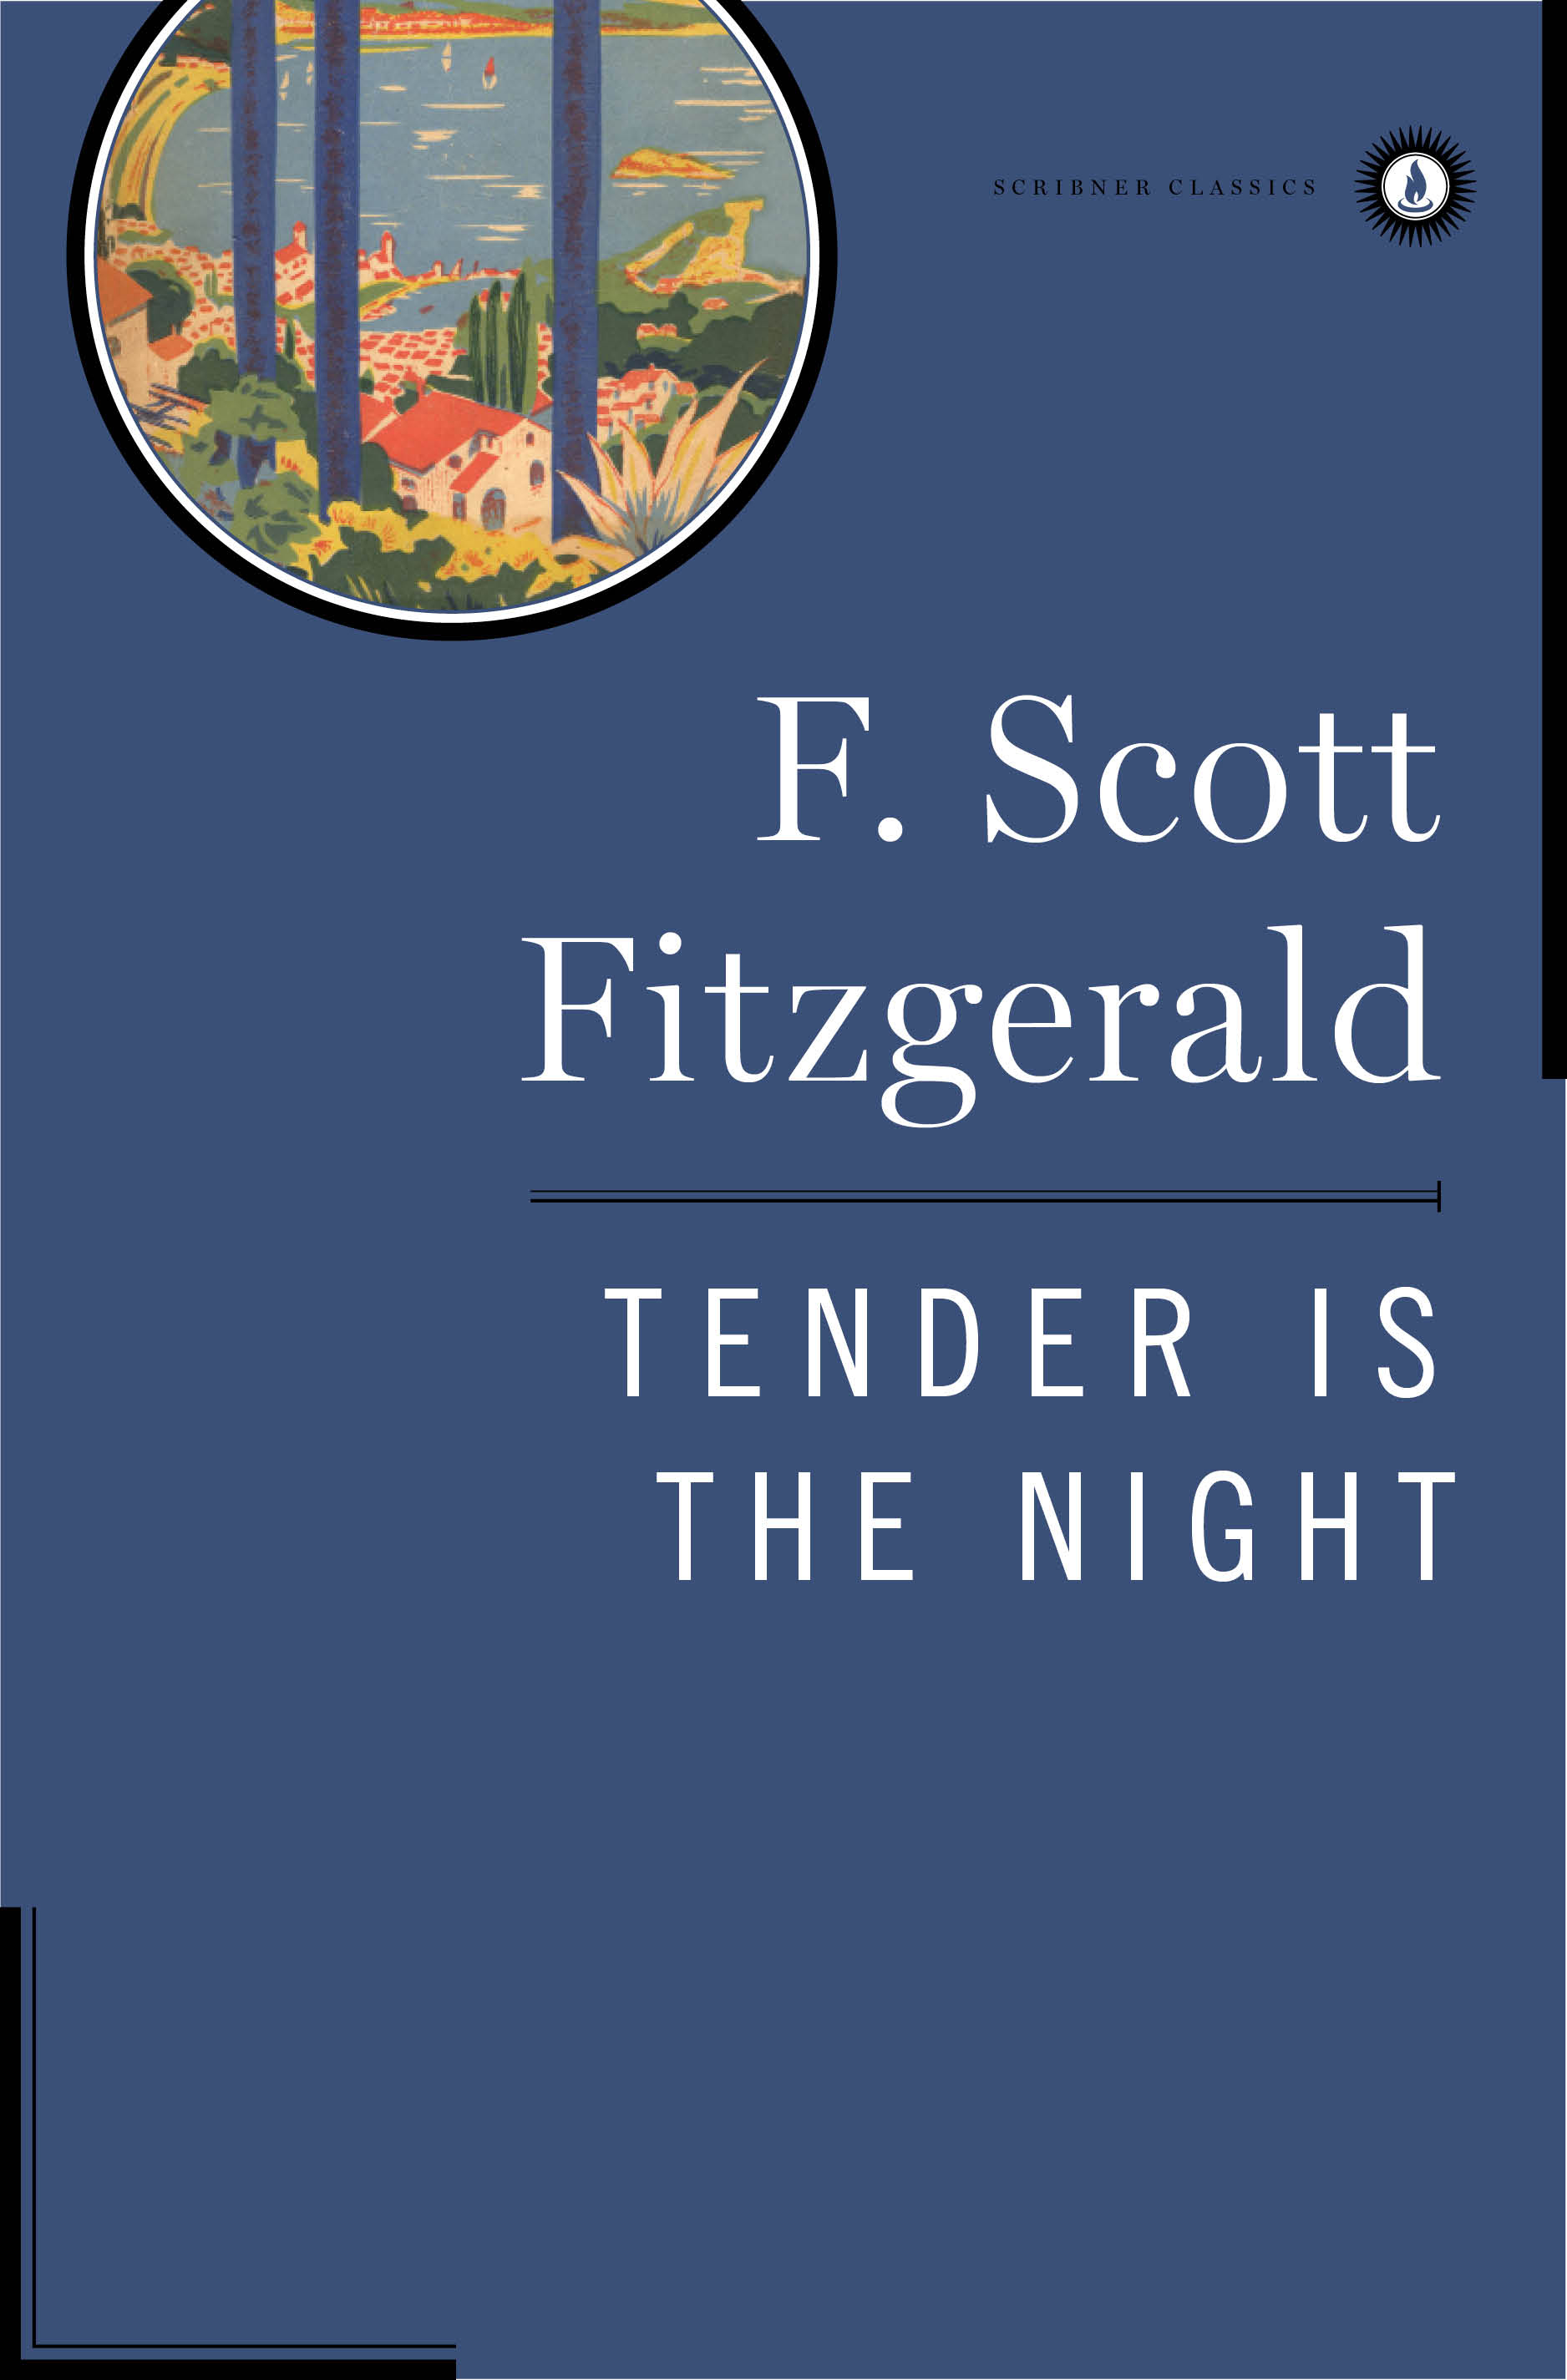 Tender is the night book by f scott fitzgerald for Tende night and day